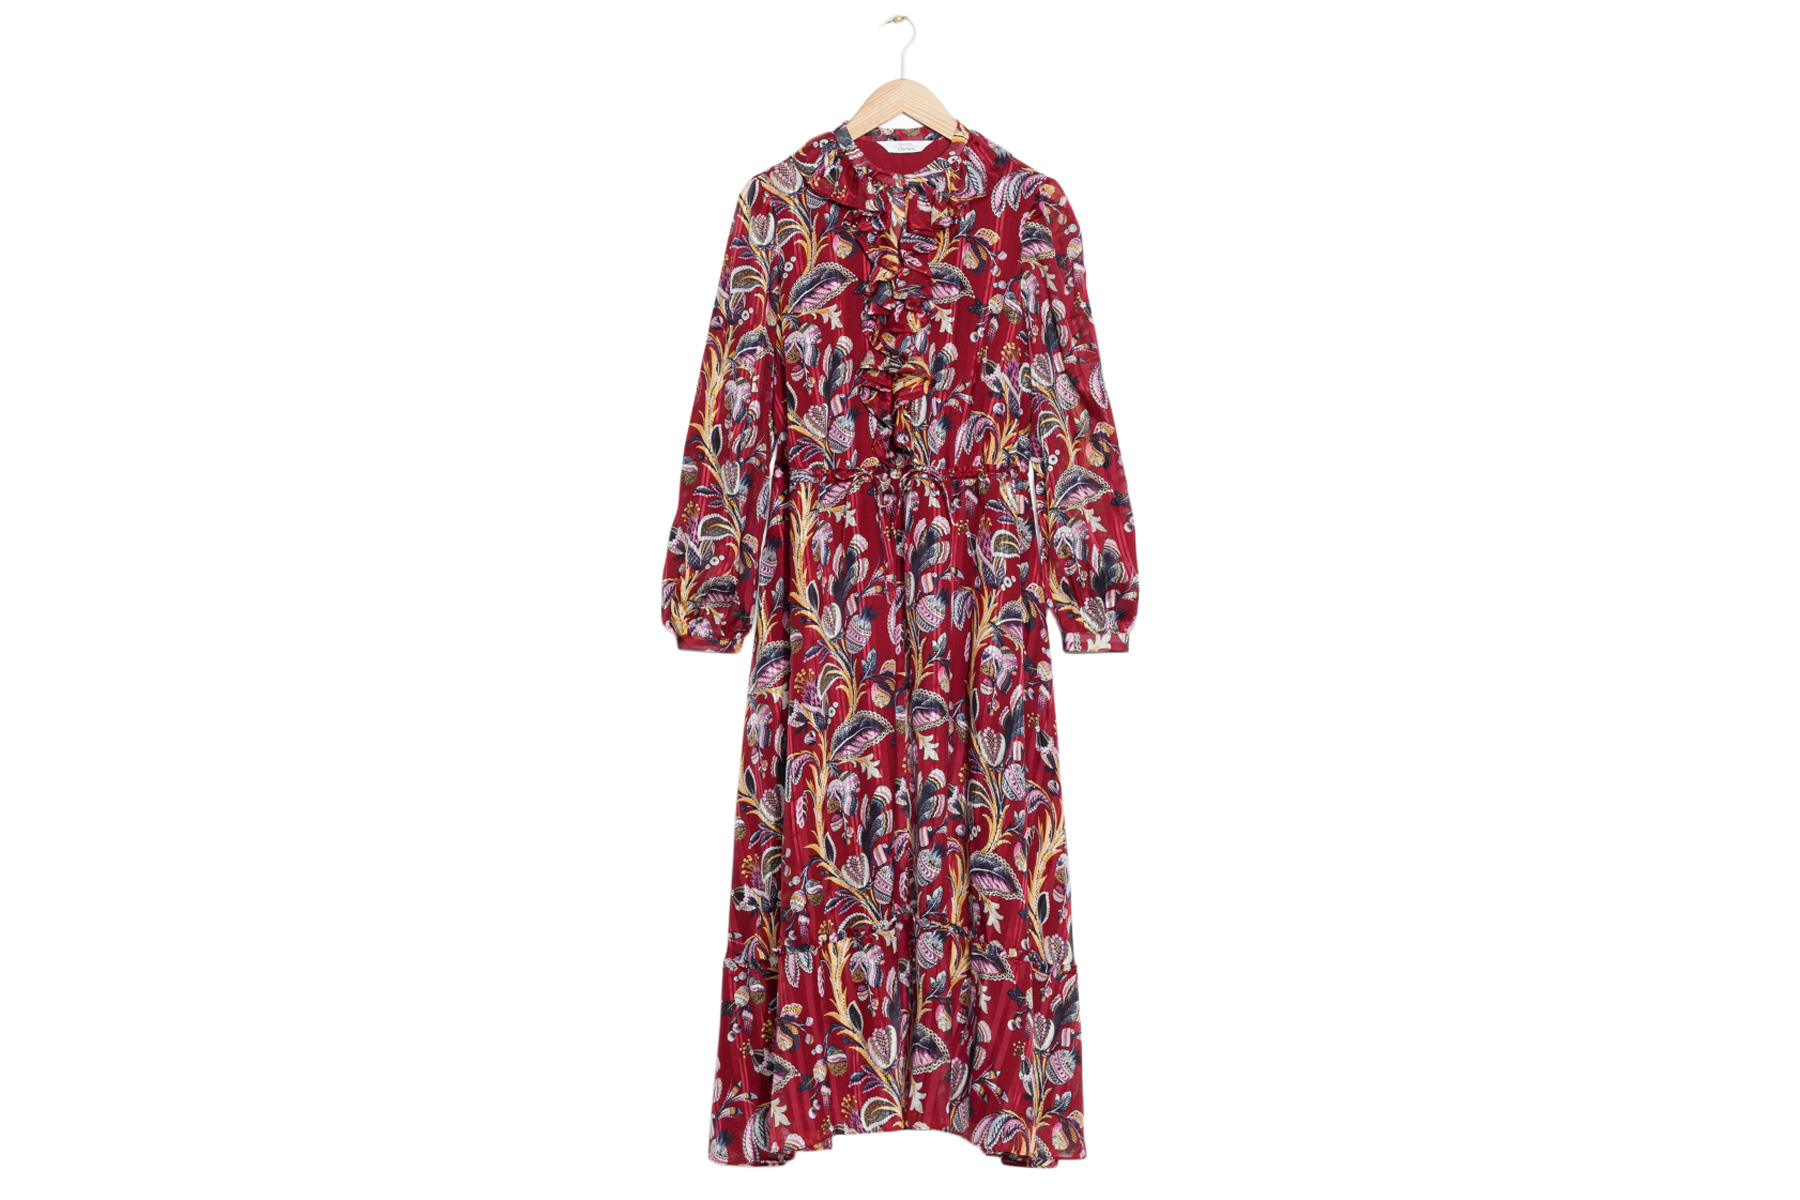 & Other Stories Floral Print Maxi Dress